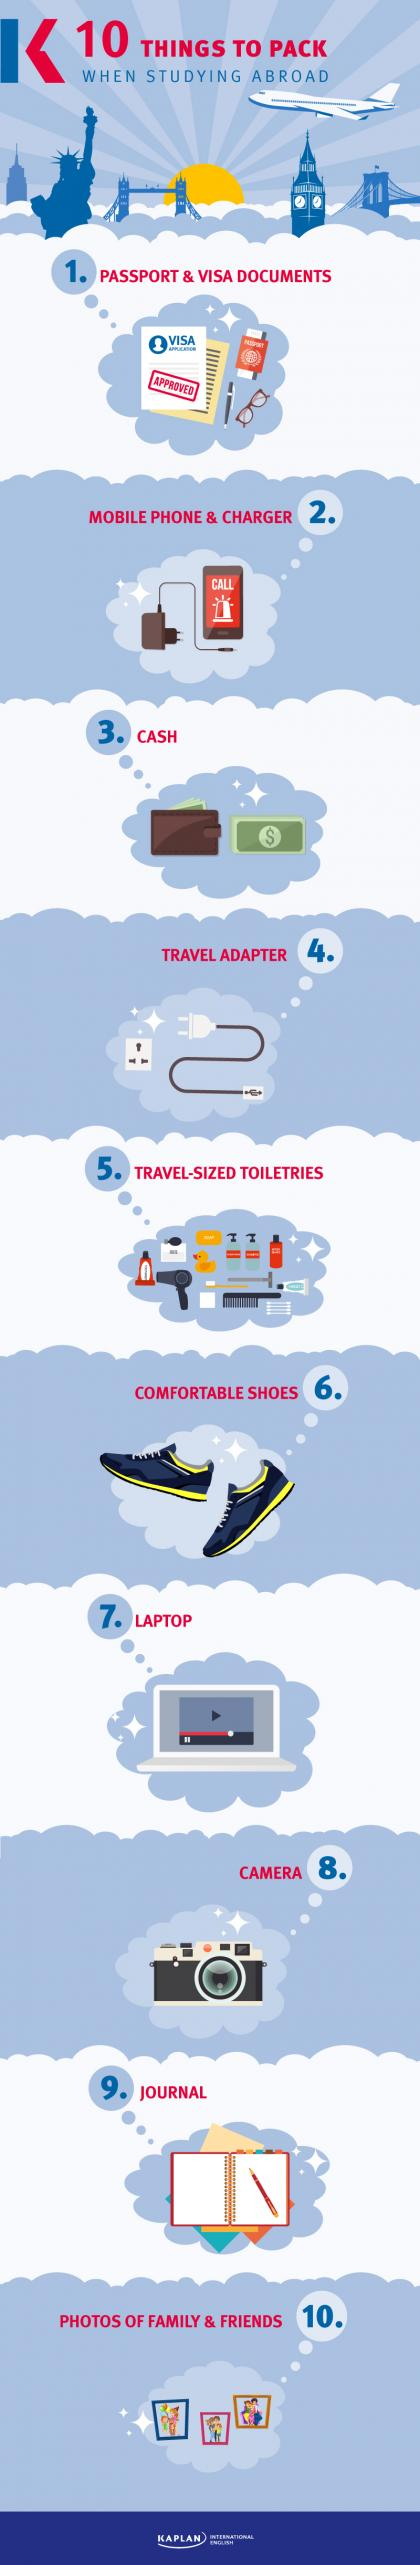 10_things_to_pack_-_infographic